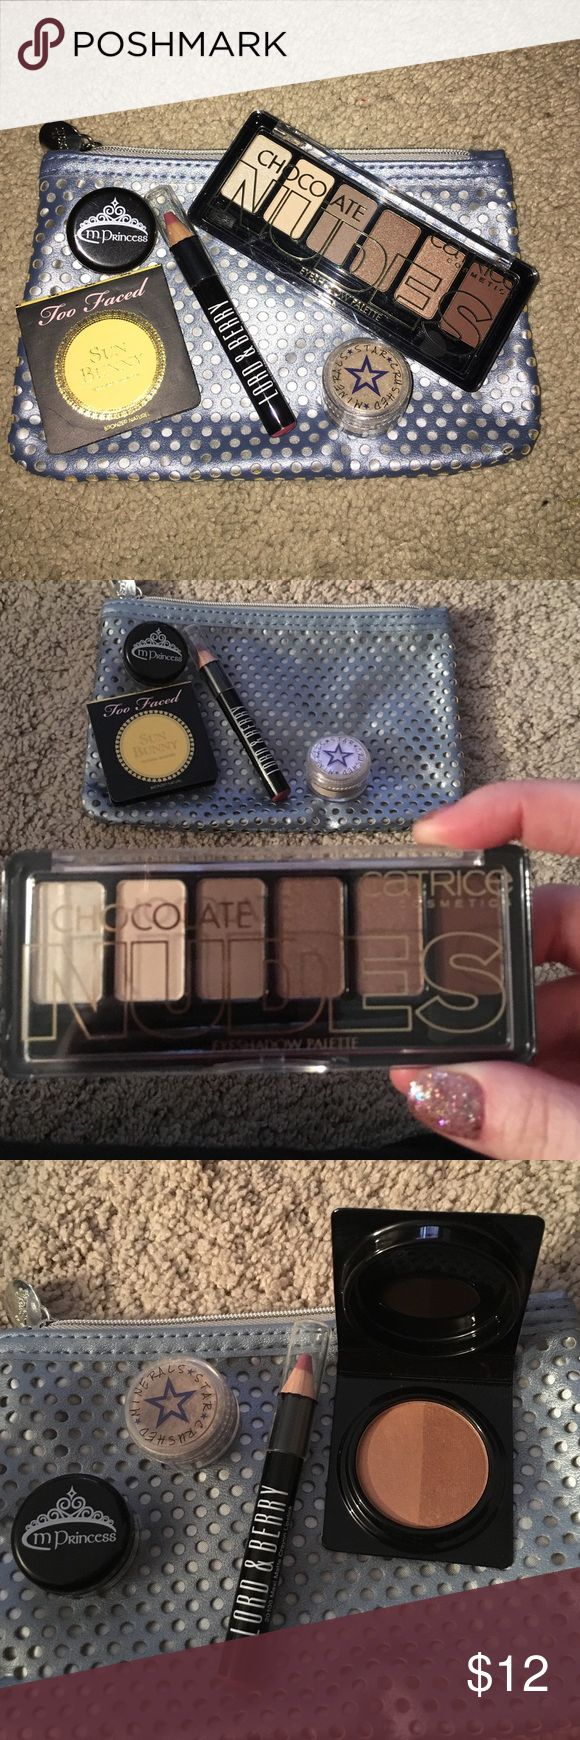 Makeup bag with goodies Ipsy bag with Catrice eyeshadow chocolate nudes, Too Faced Sun Bunny Bronzer sample, Lord & Berry Matte Lip Crayon, two loses eye shadow pigments, M Princess in Melting Maple and Metallic eyeshadow in Aged to Perfection Champagne. Too Faced Makeup Bronzer